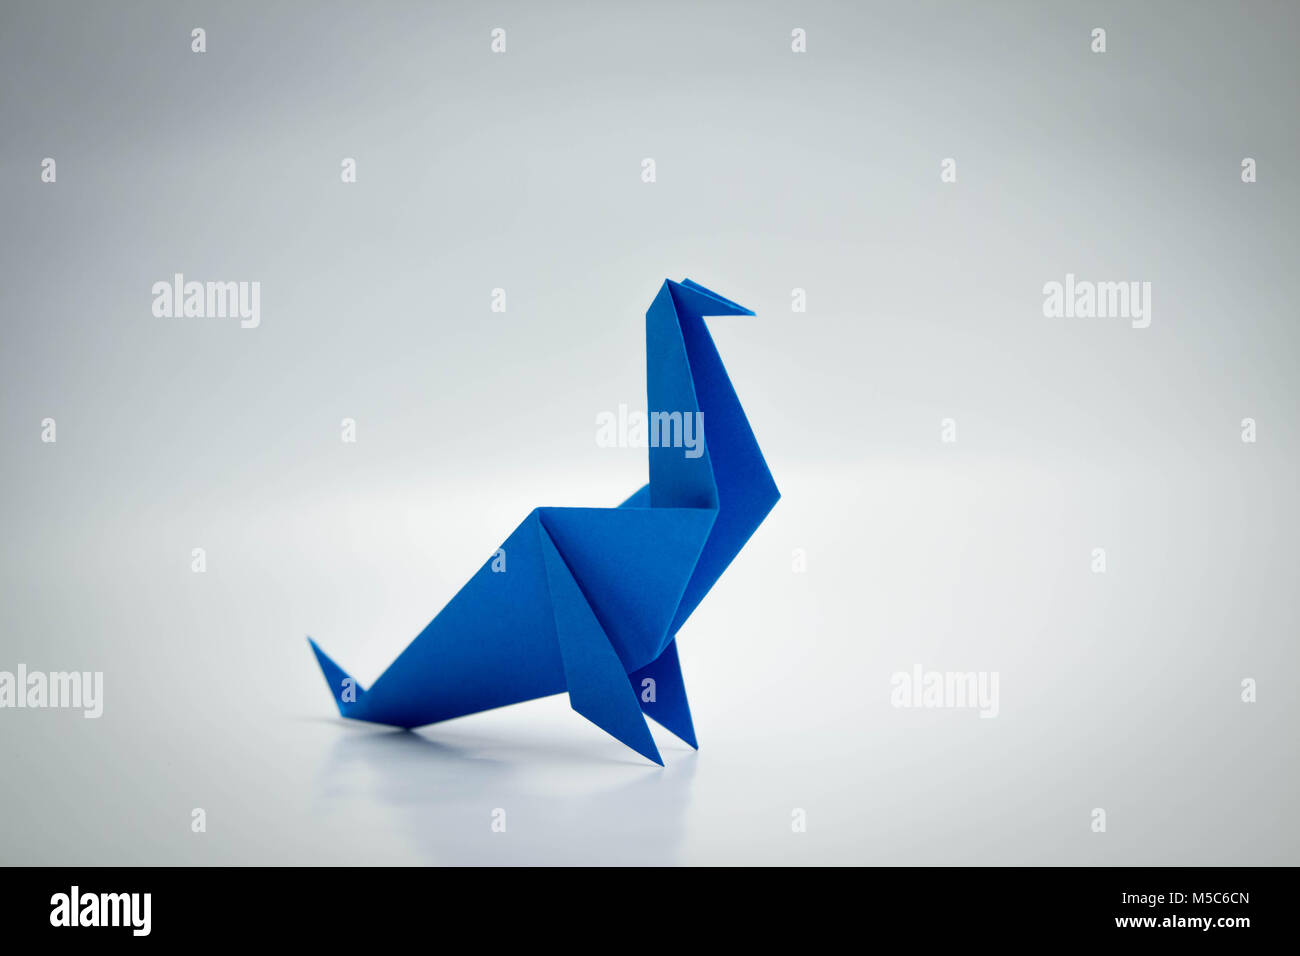 Origami seal stock photos origami seal stock images alamy blue seal origami isolated on white stock image jeuxipadfo Gallery